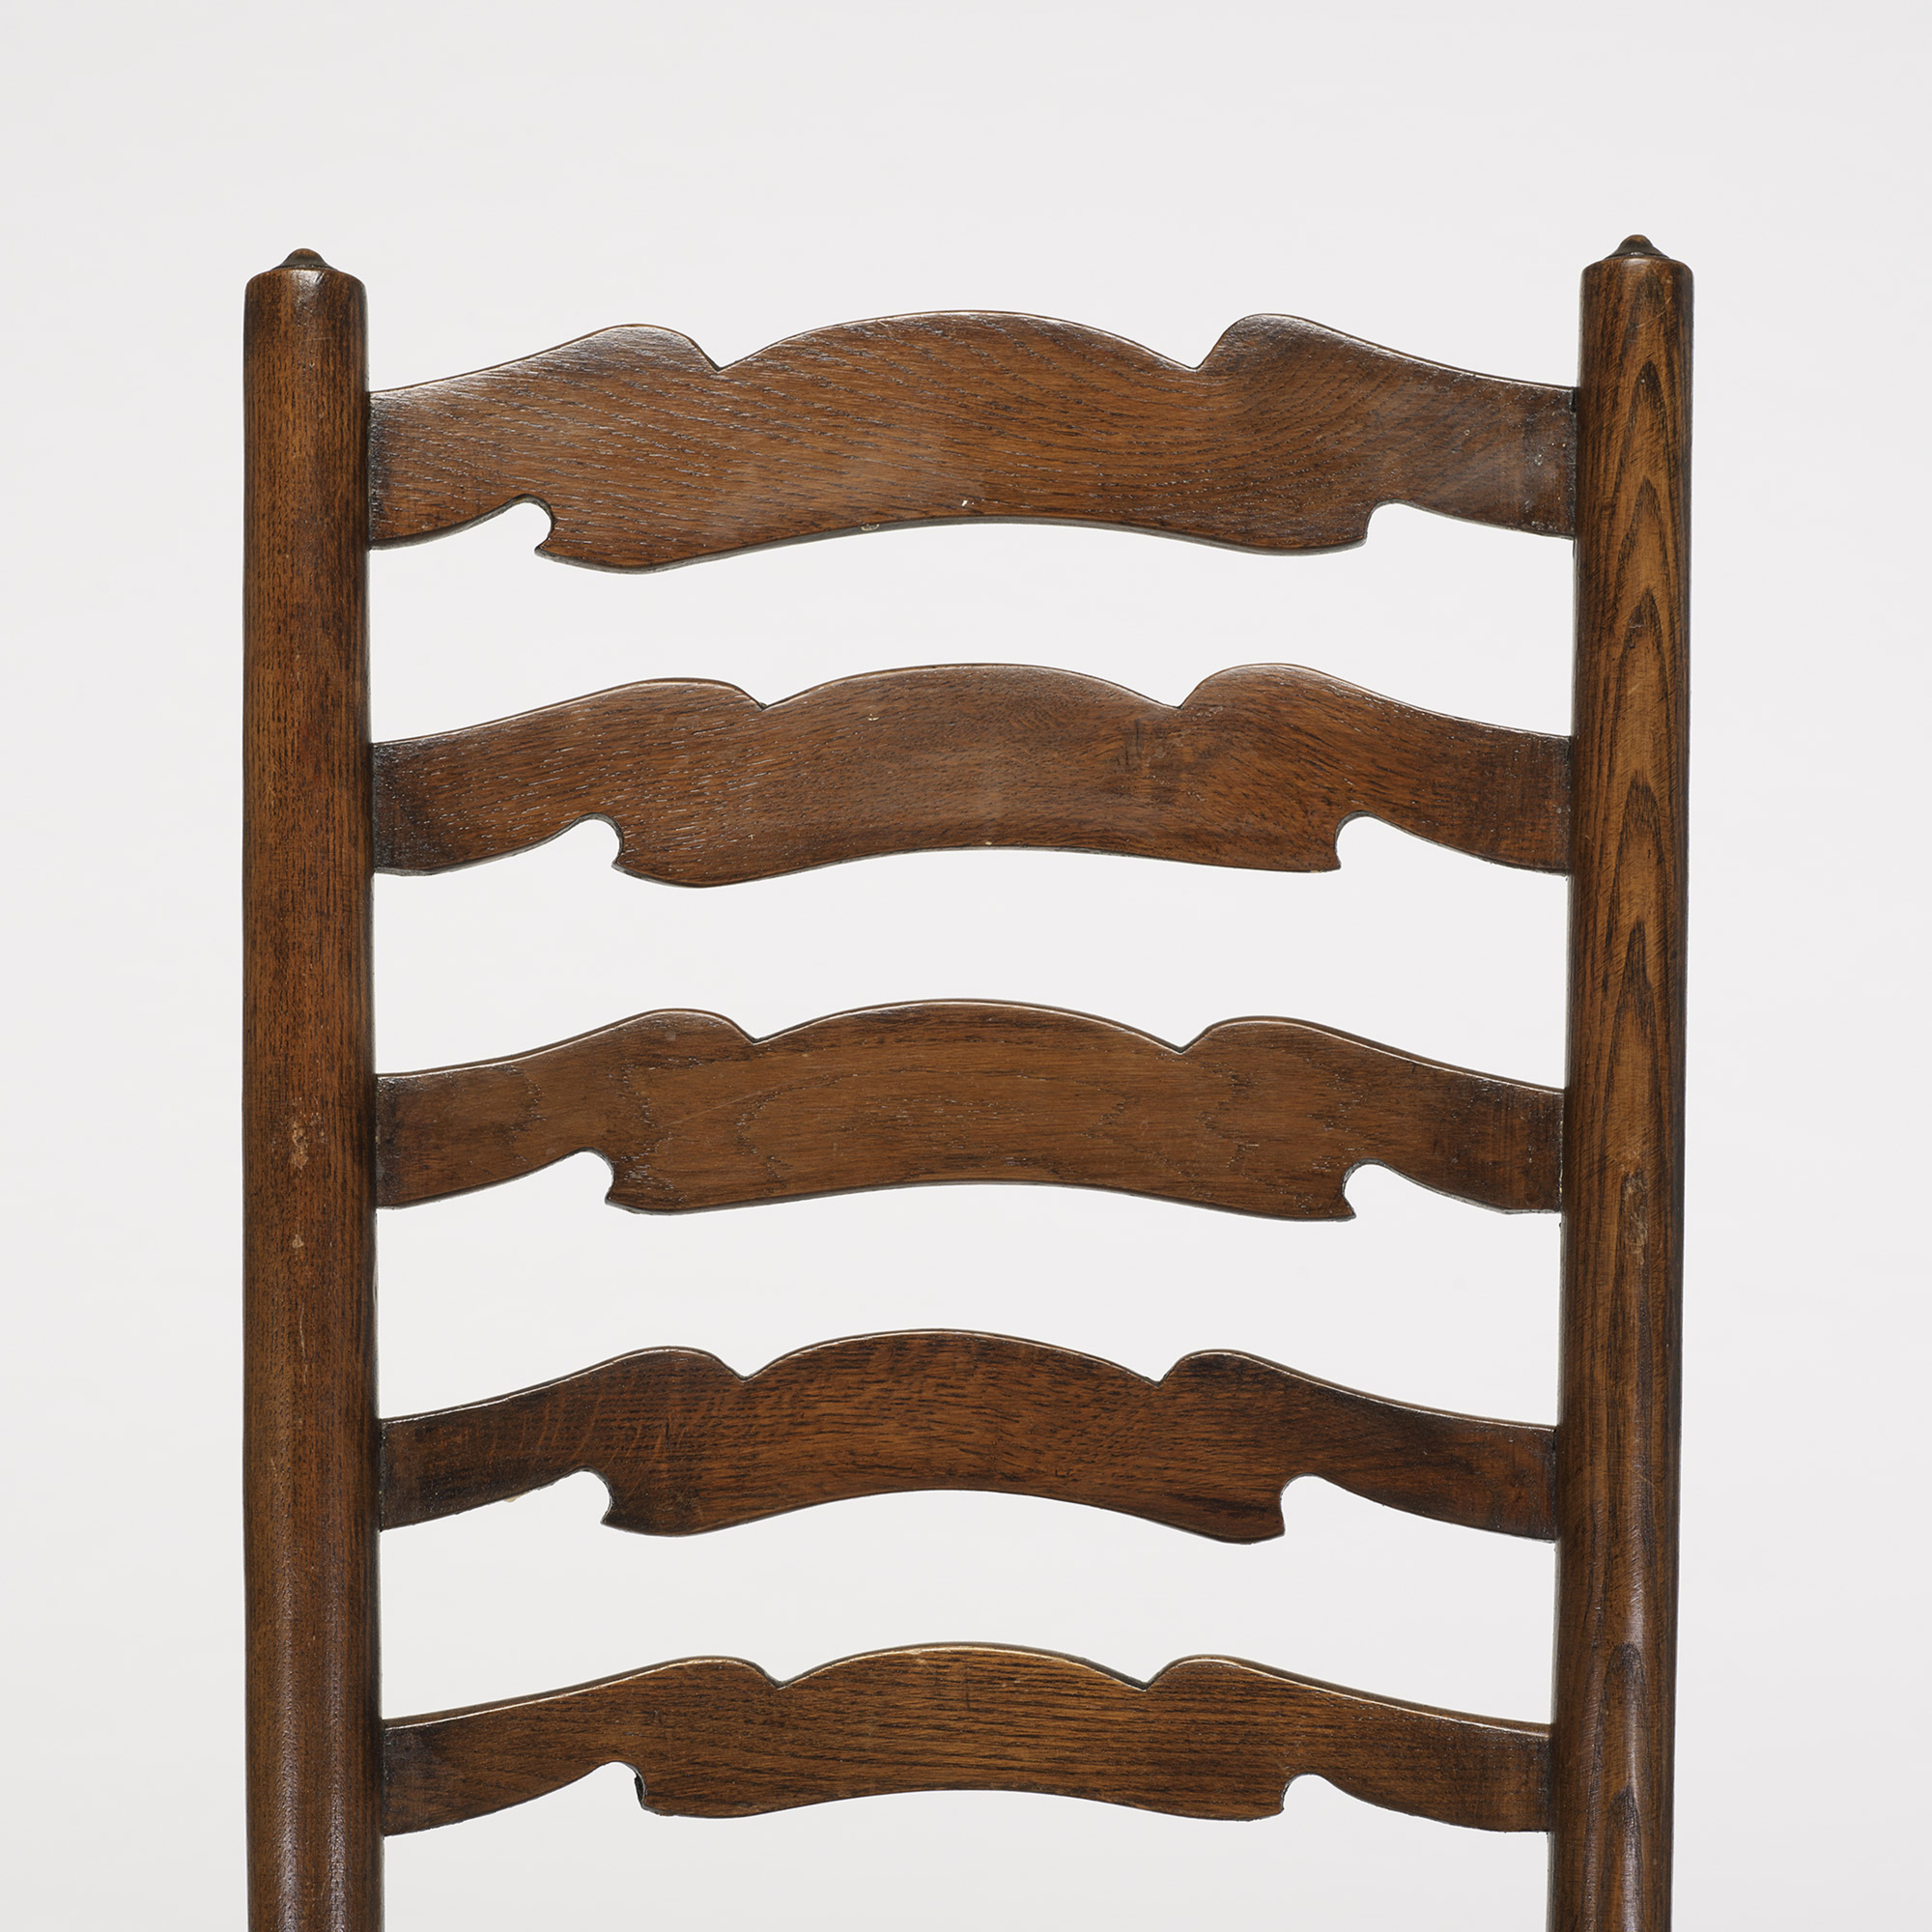 277: English / ladderback chairs, set of eight (4 of 4)